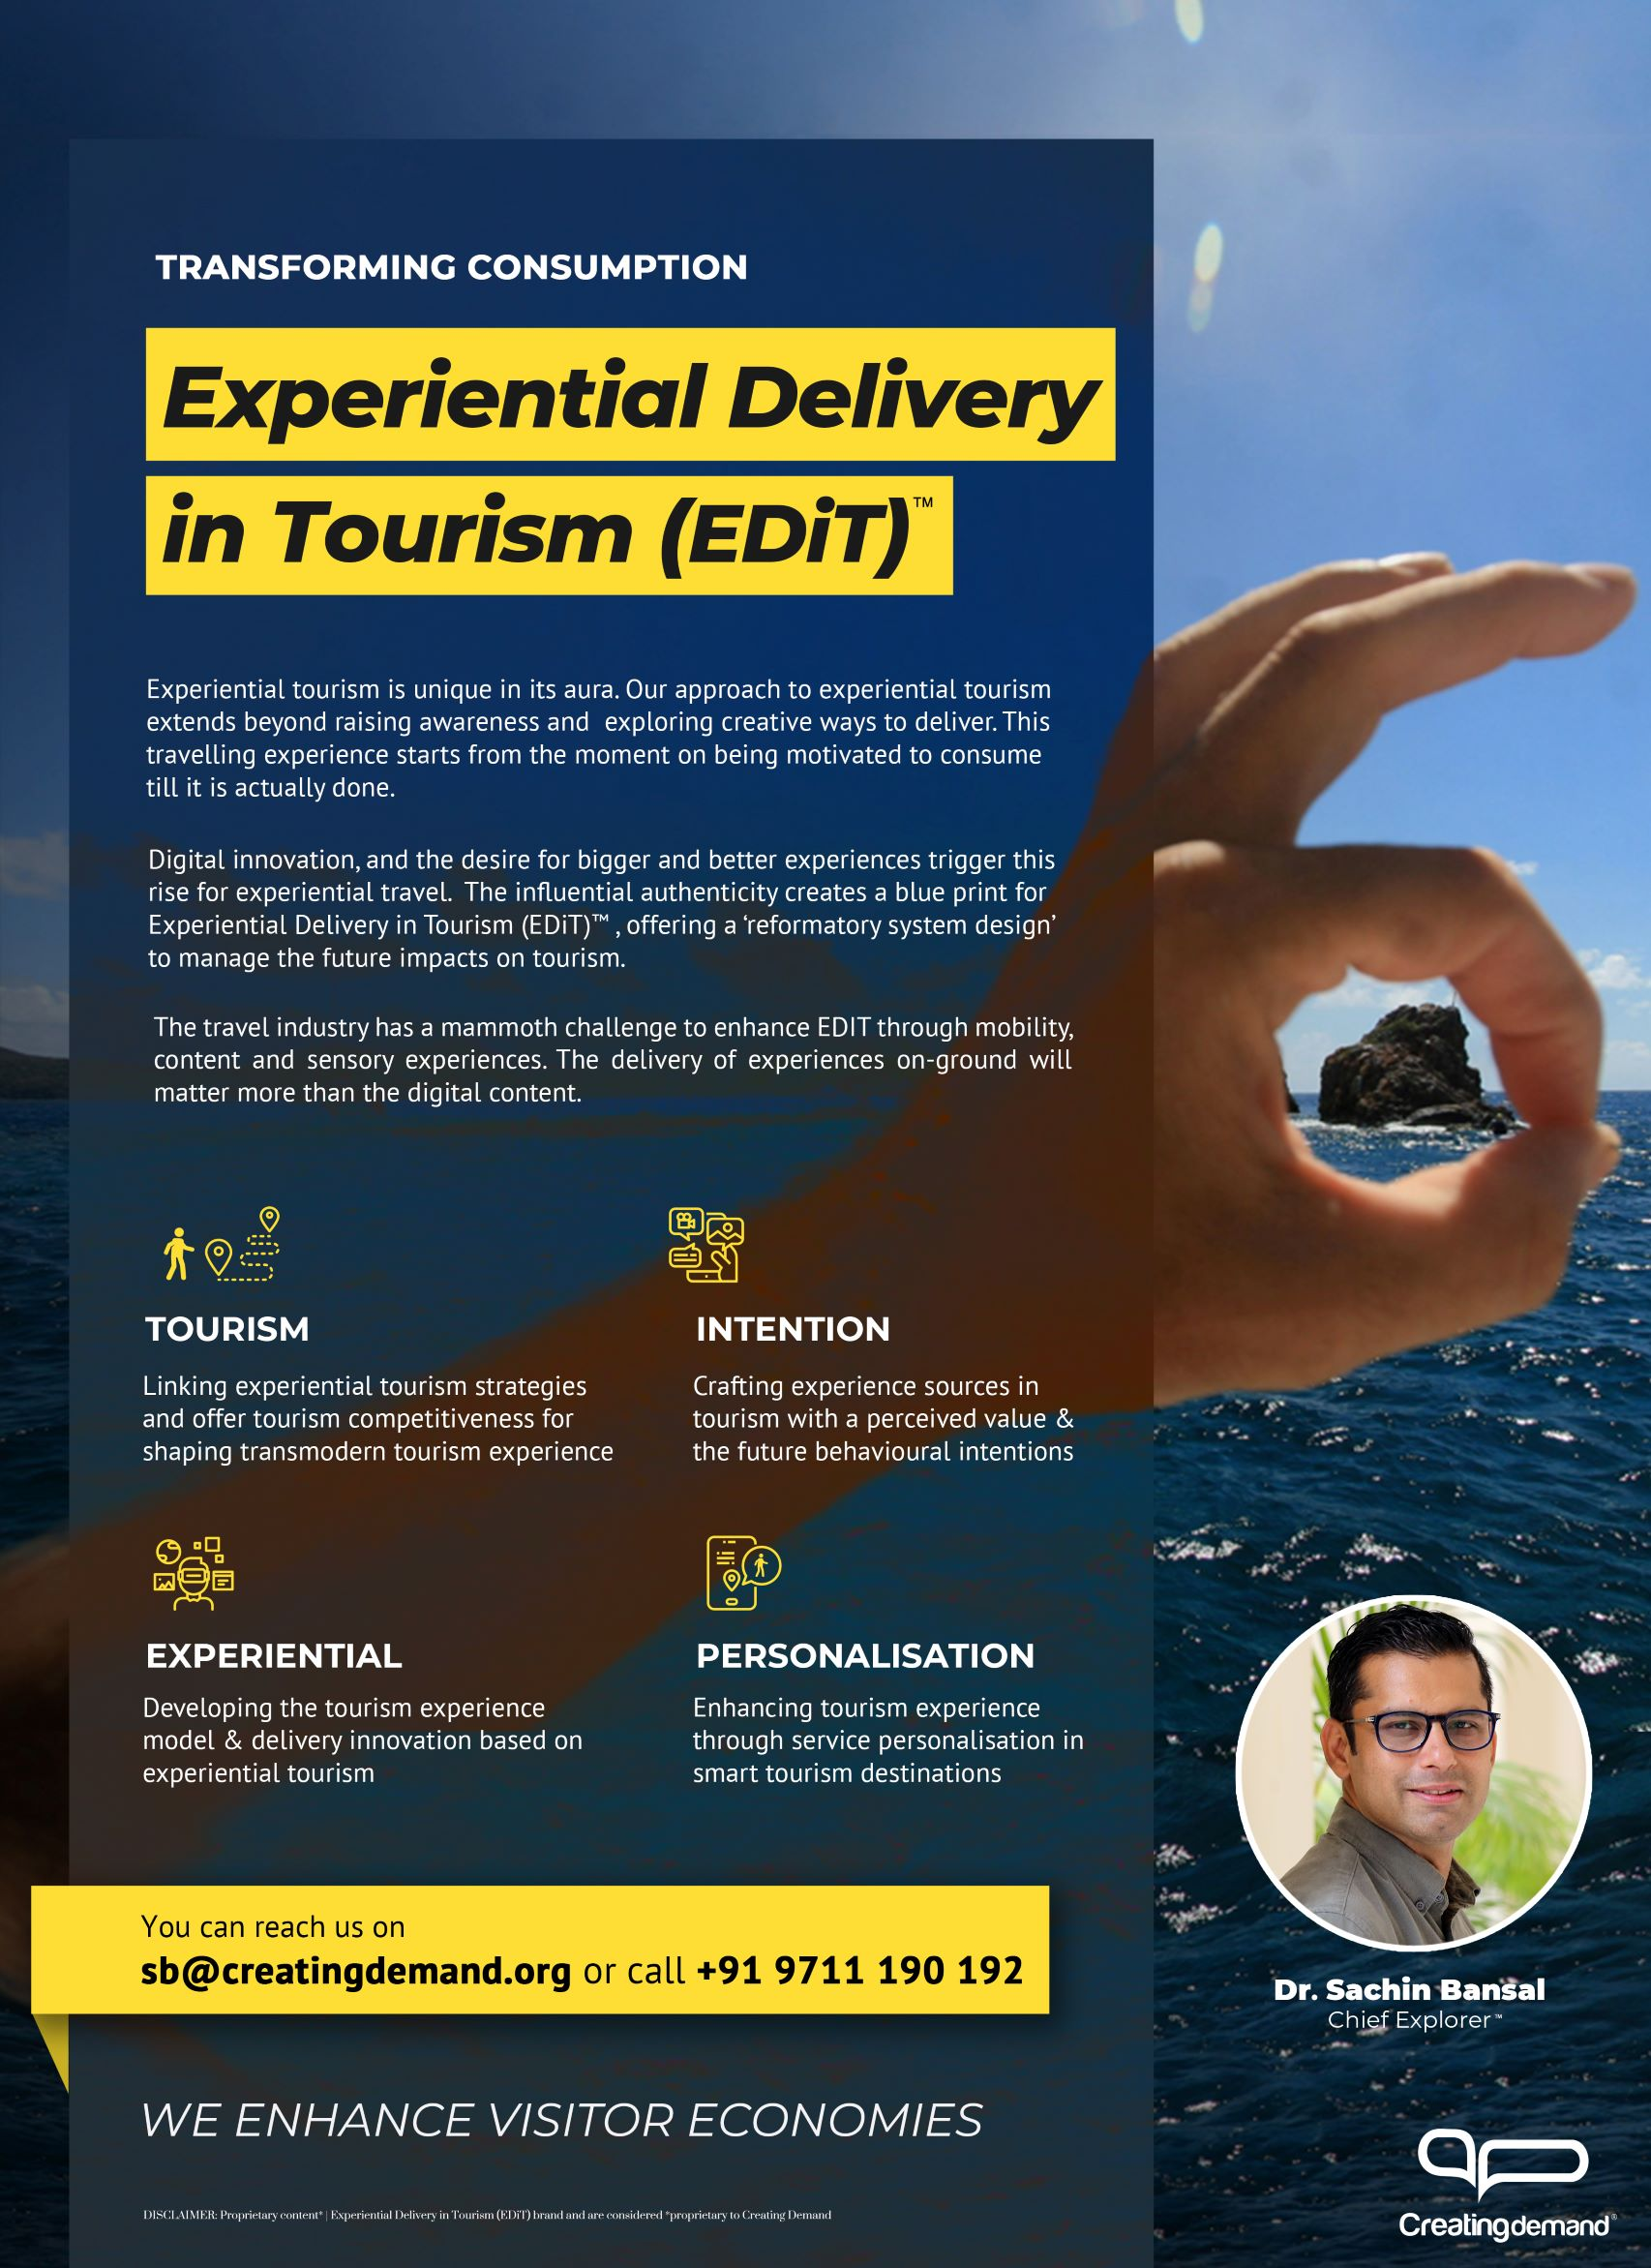 Experiential Delivery in Tourism (EDiT)™